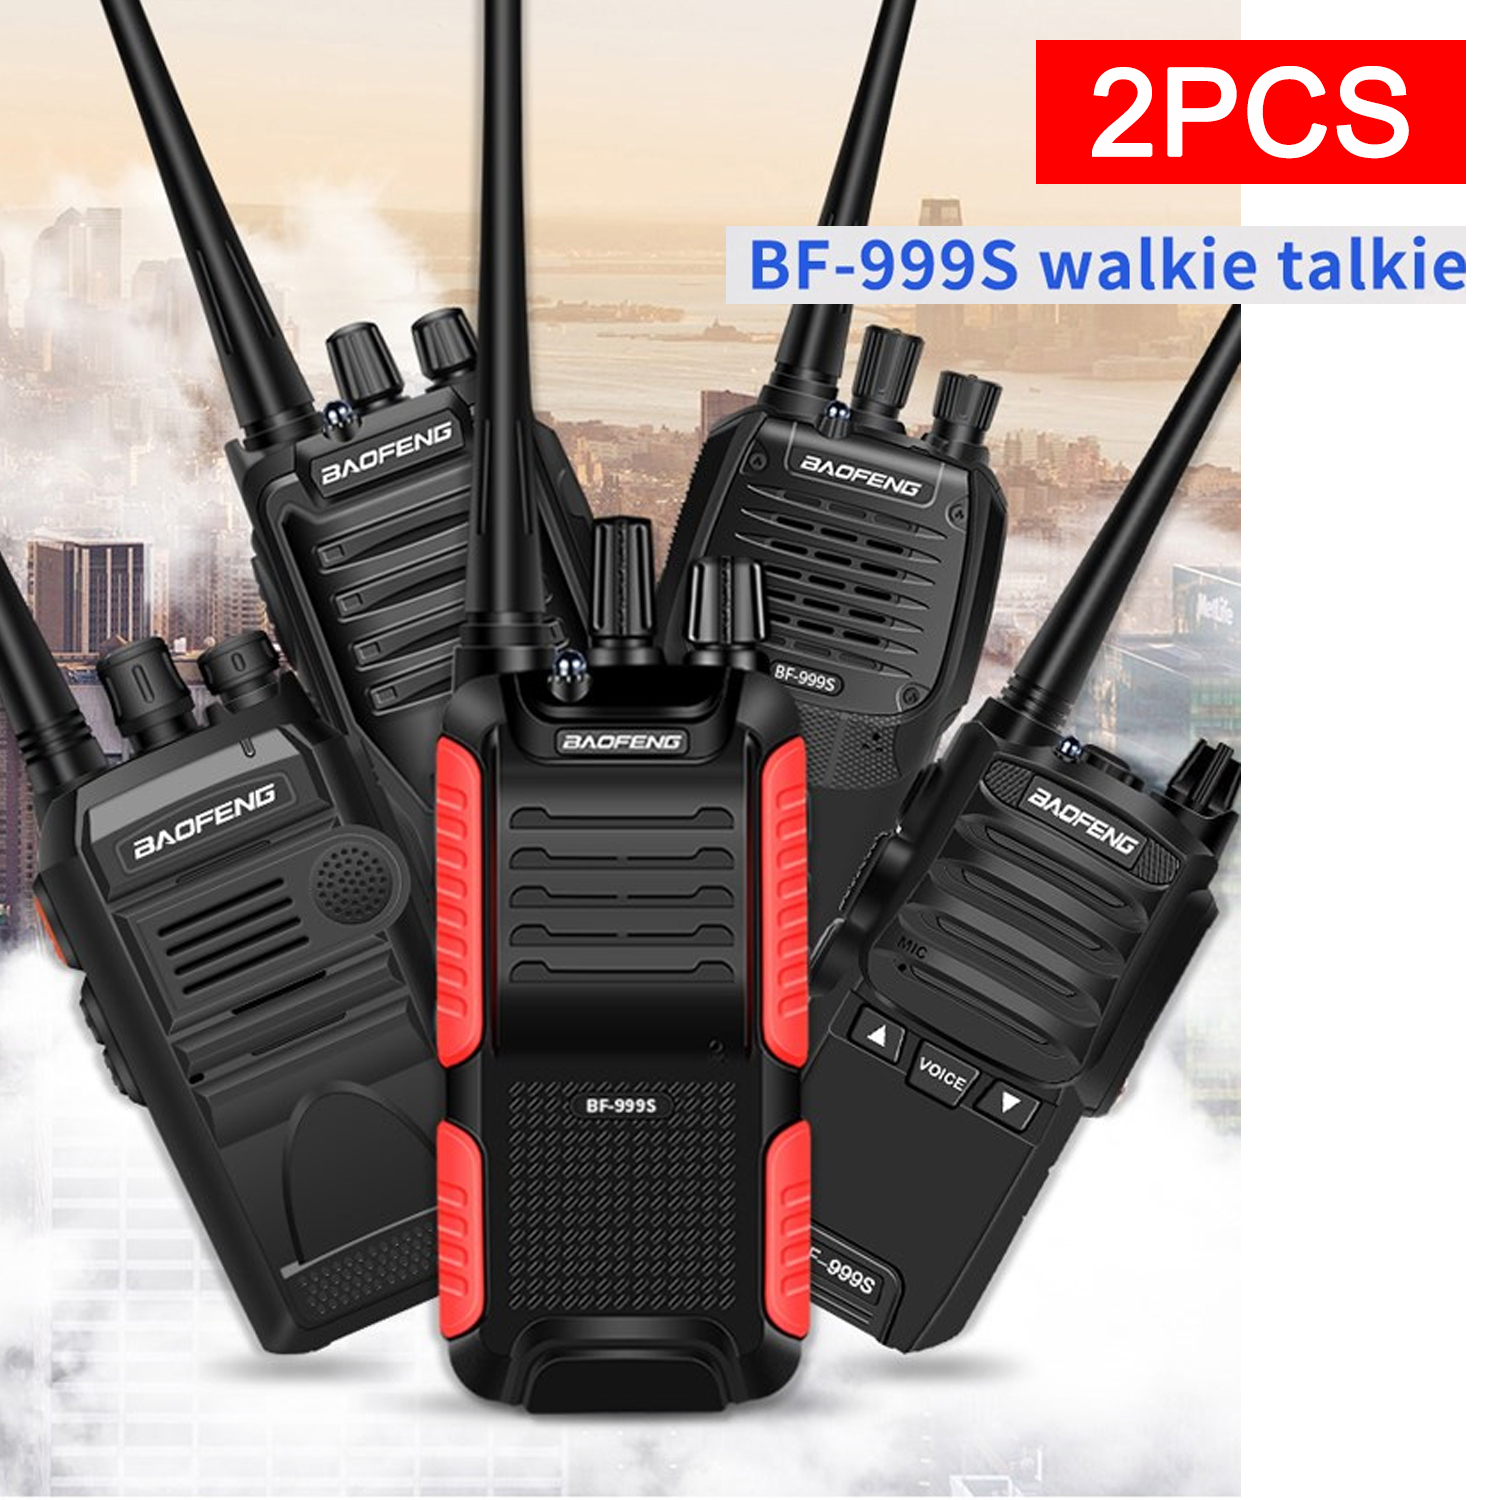 2pcs/lot BF-999S Walkie Talkie Baofeng 8W /5W 4200mAh Transceiver Portable Two Way Radio Upgrade BF-888s